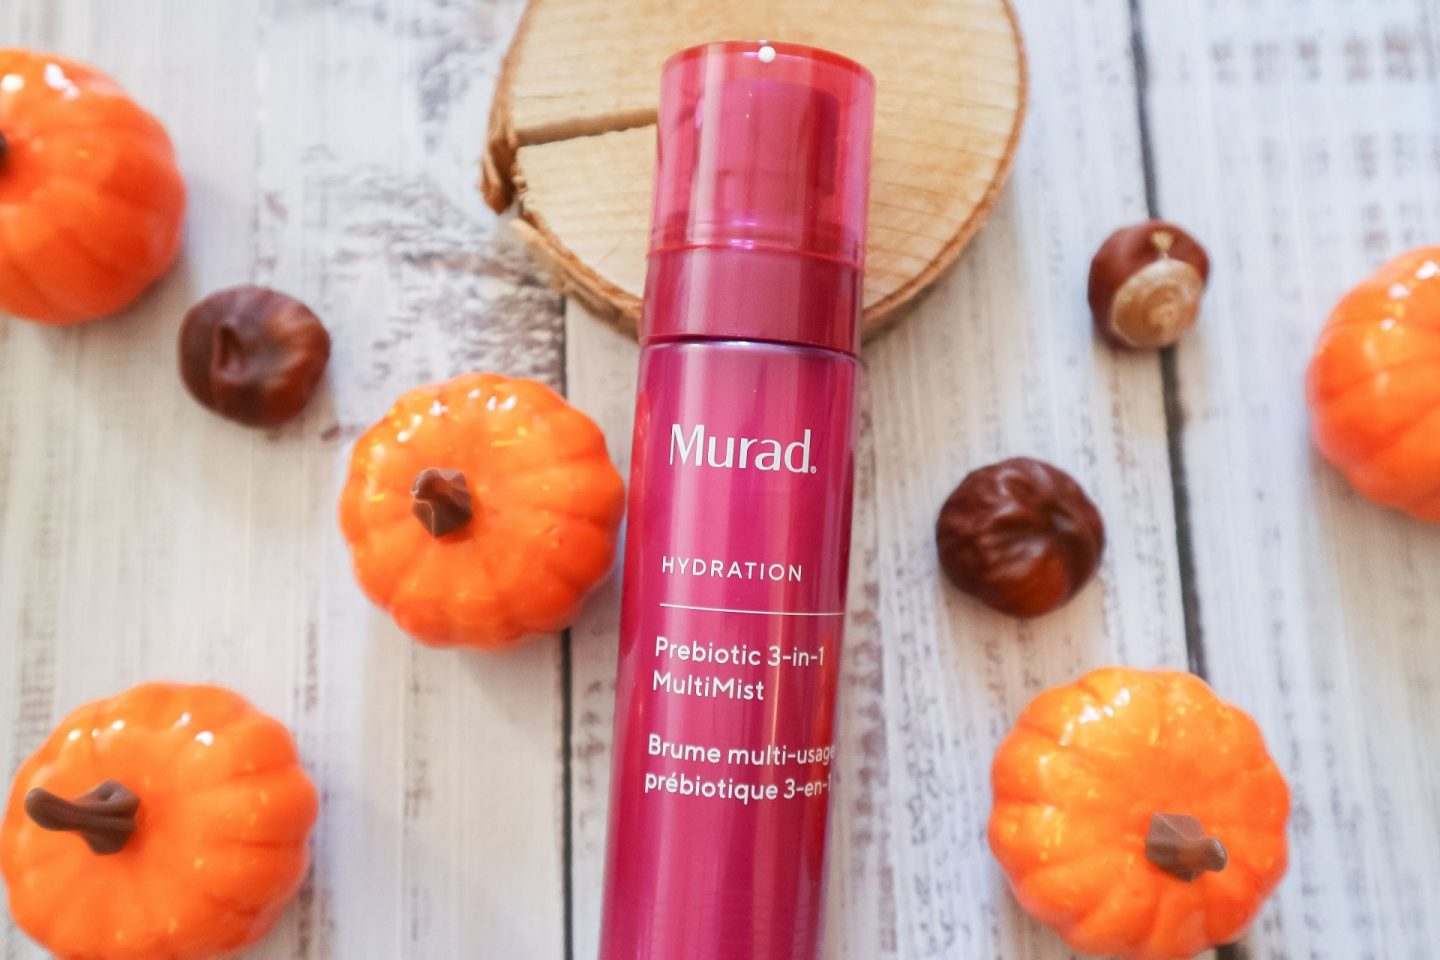 Murad Prebiotic 3-in-1 Multi Mist